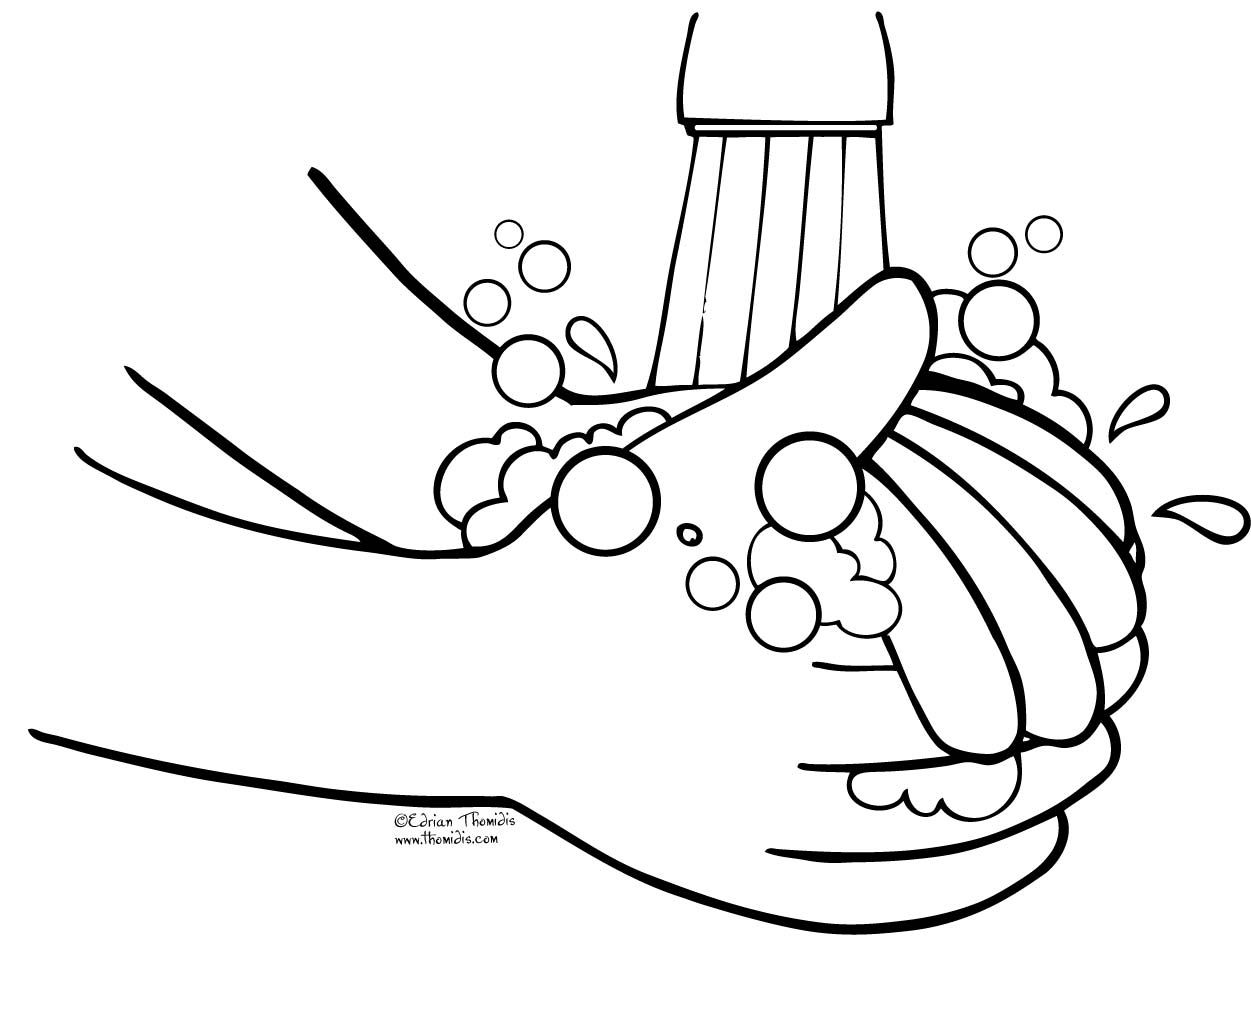 1251x1031 Washing Hands Coloring Pages School School